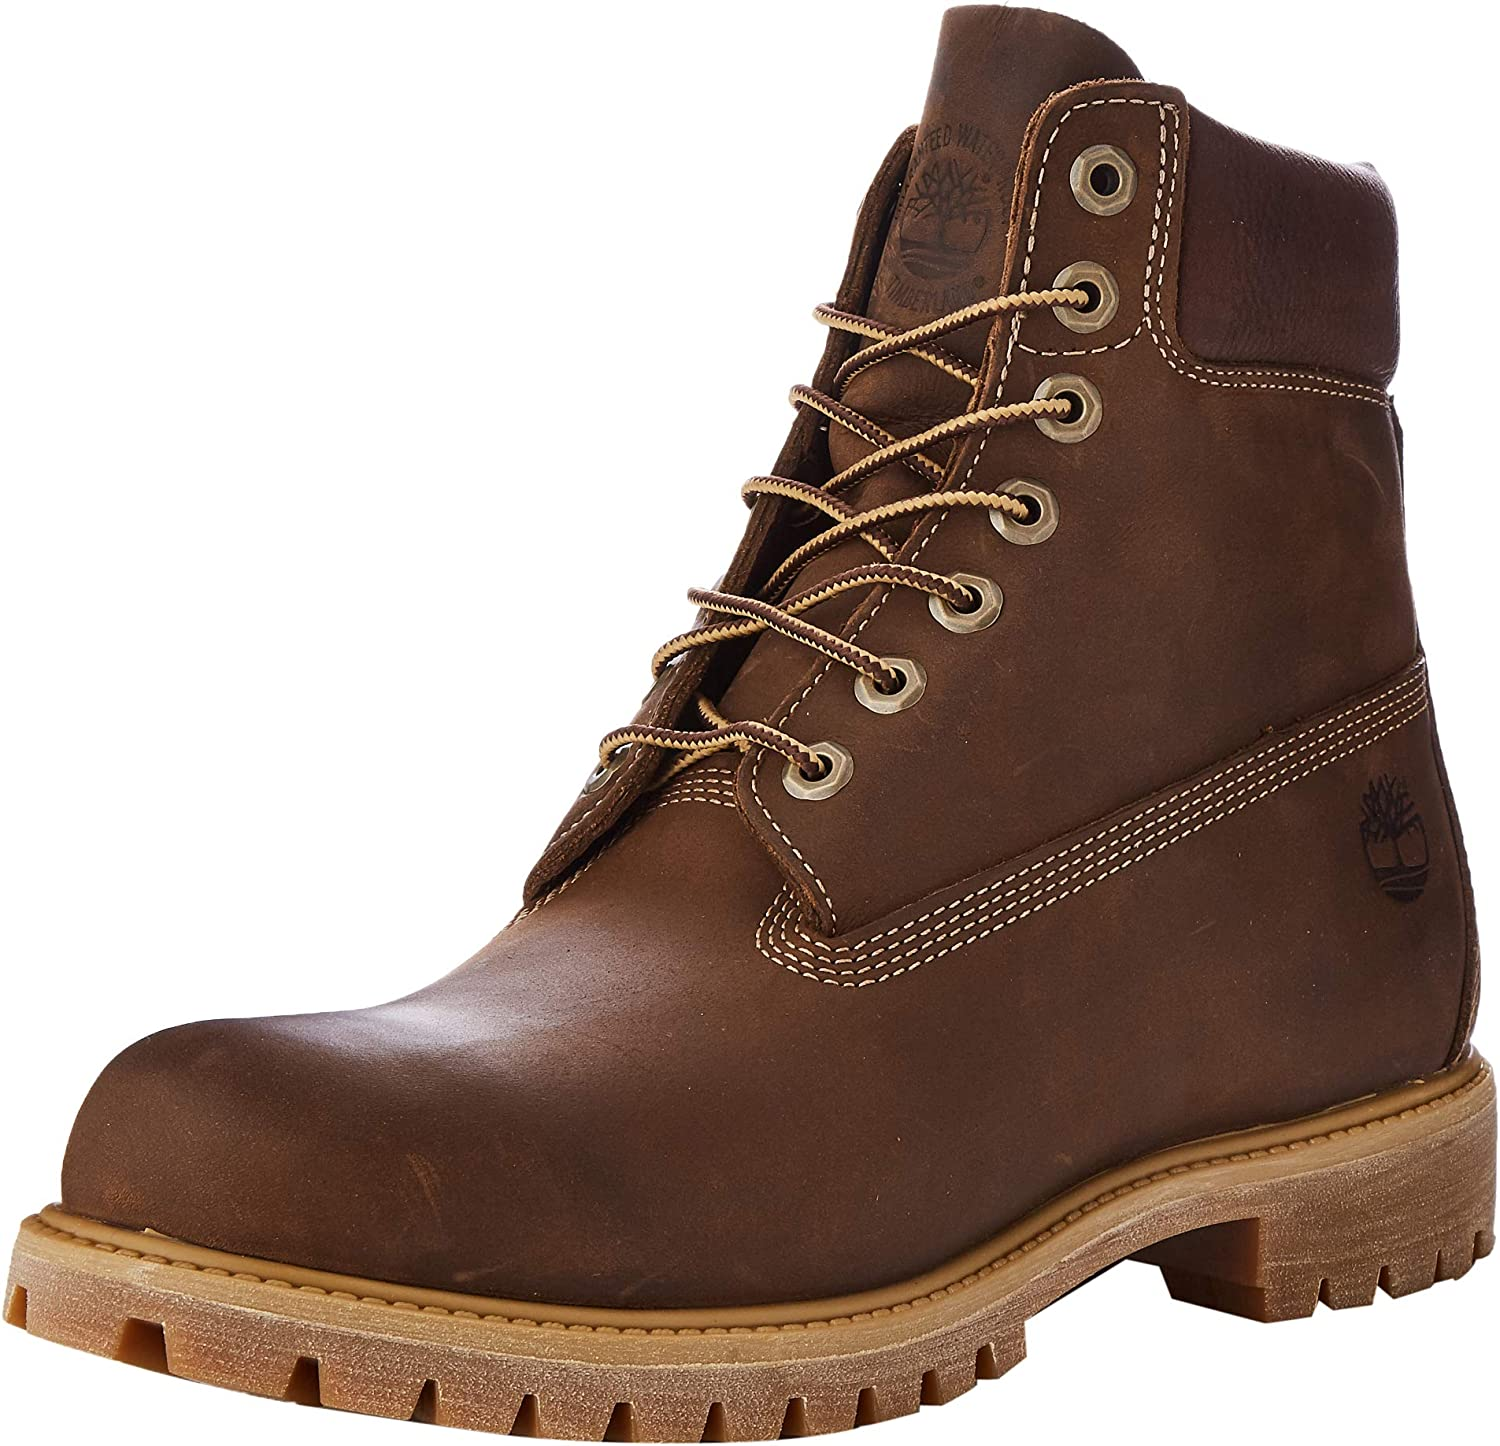 Details zu Timberland Premium Heritage 6 Inch Waterproof Leather Mens Boots A1R1A B44A